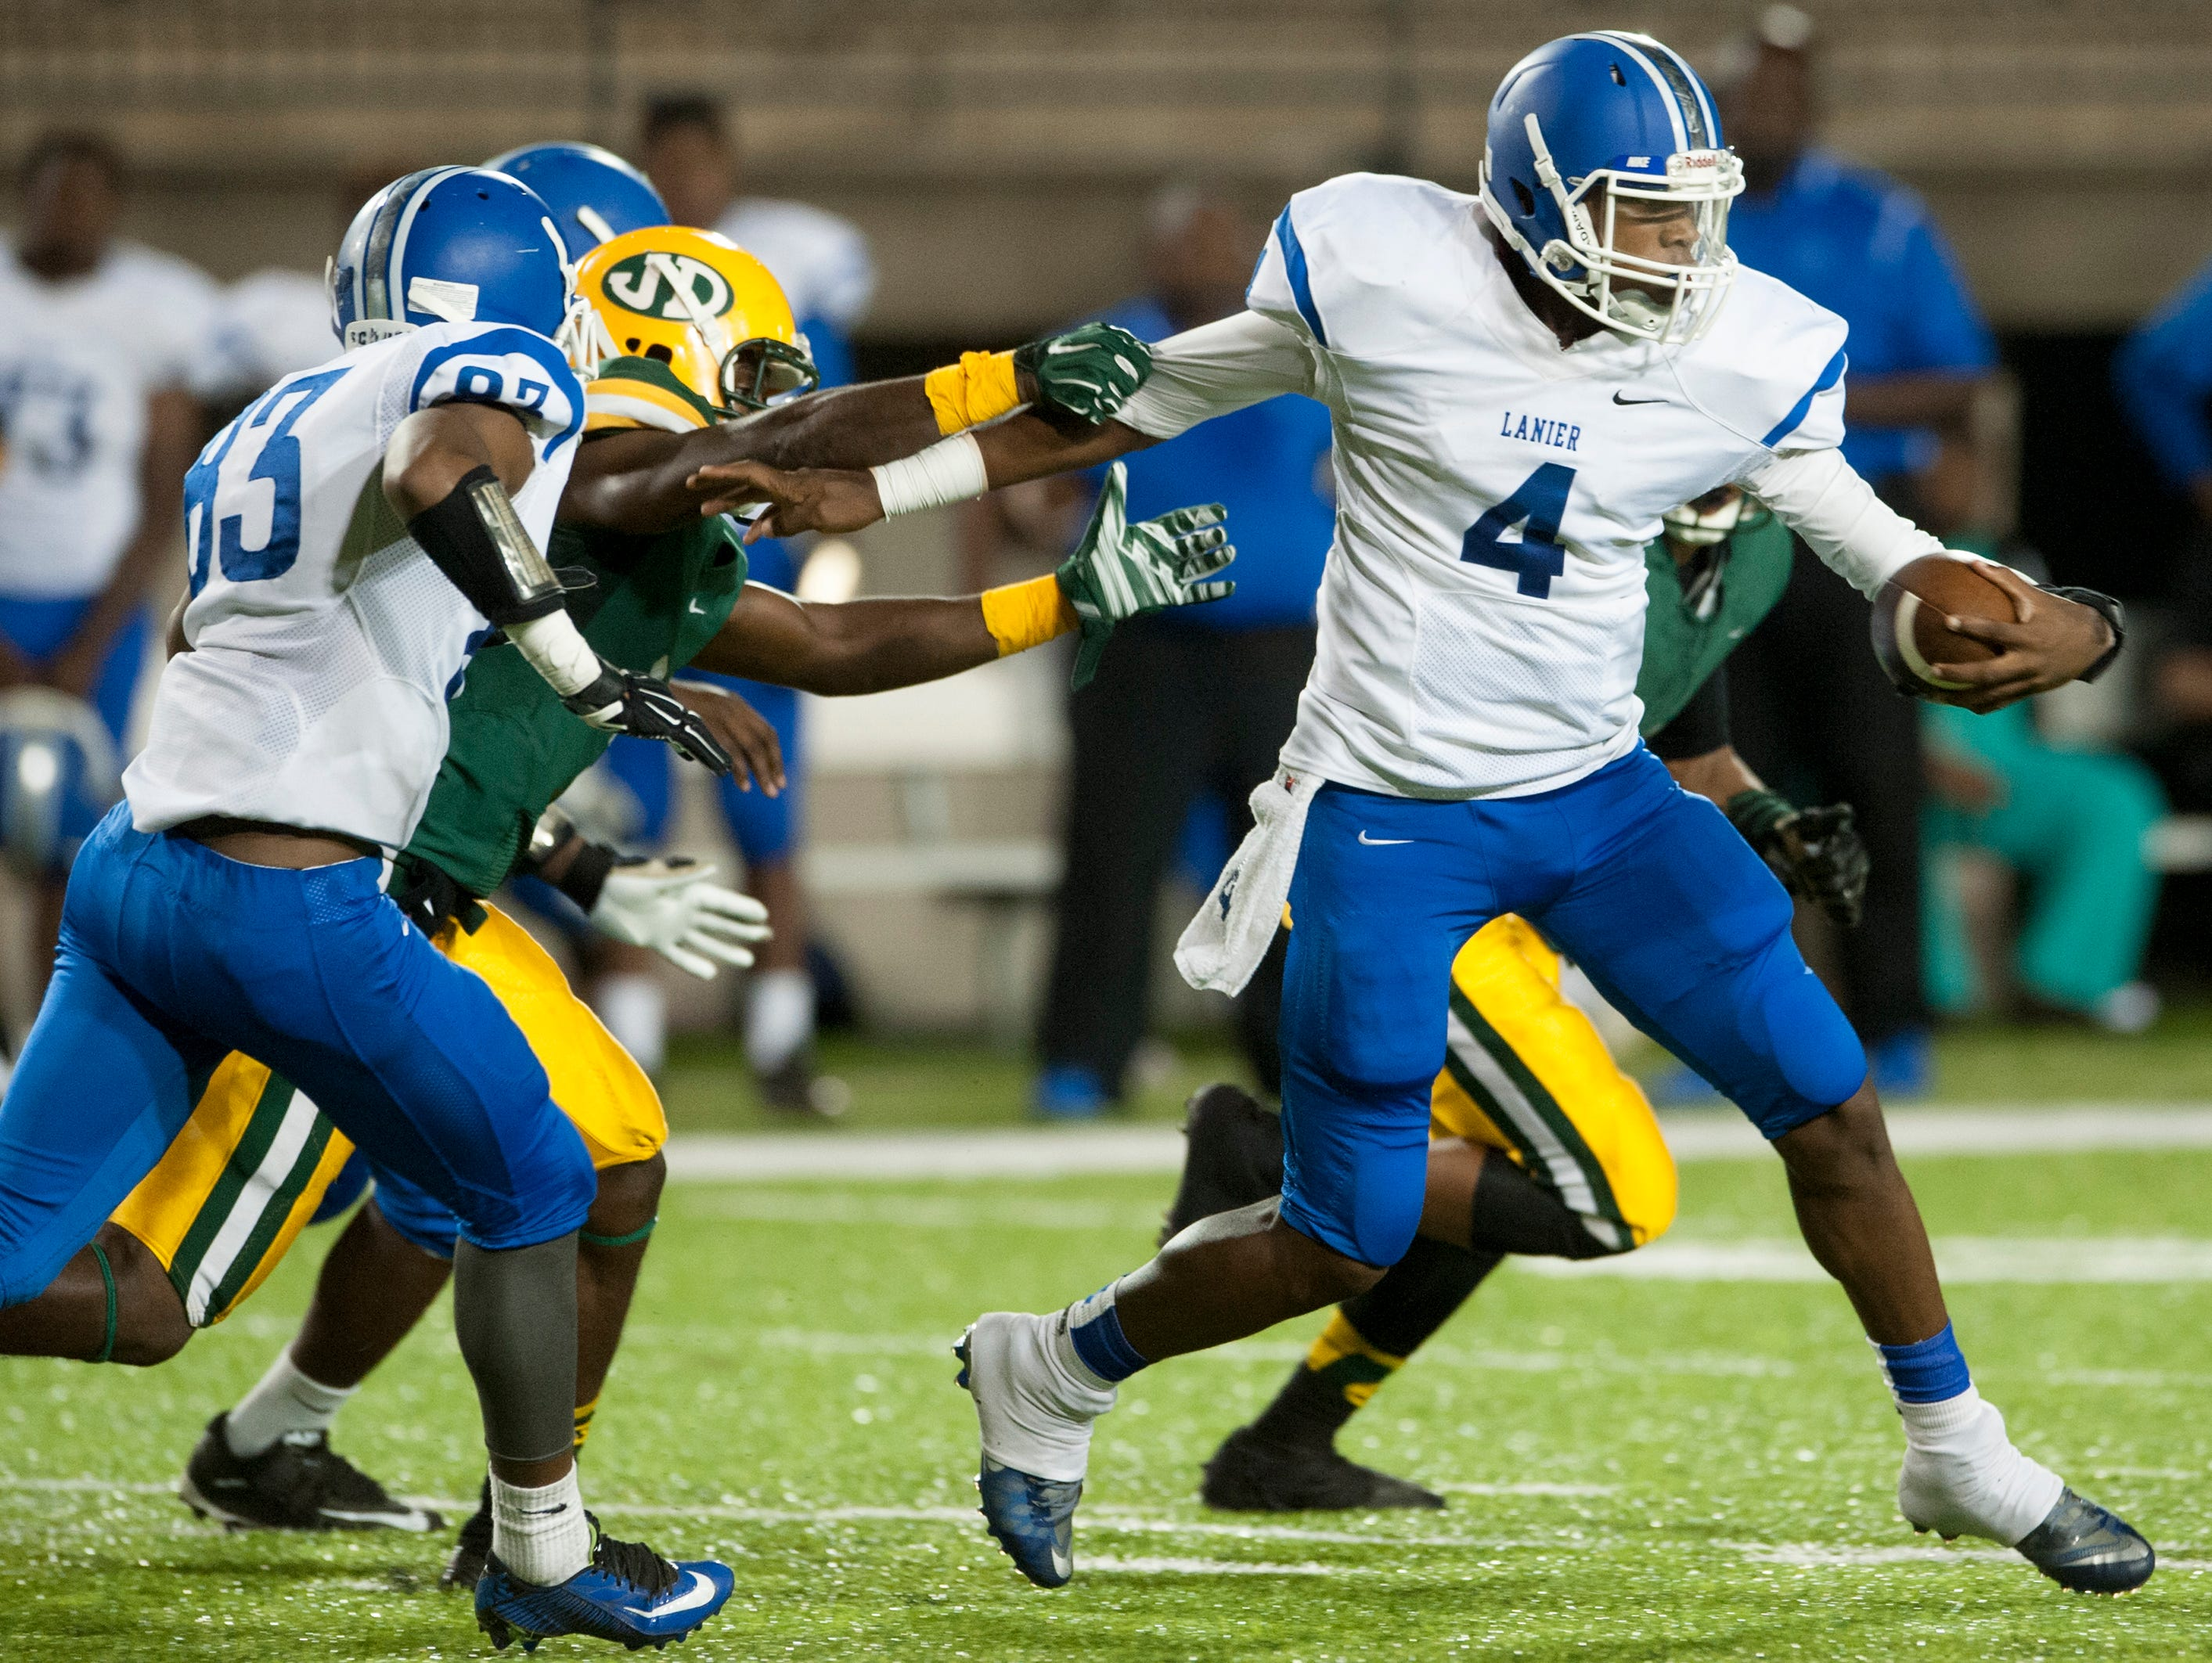 Lanier's James Foster tries to pull away from Jeff Davis defenders at Cramton Bowl in Montgomery, Ala. on Thursday September 24, 2015.